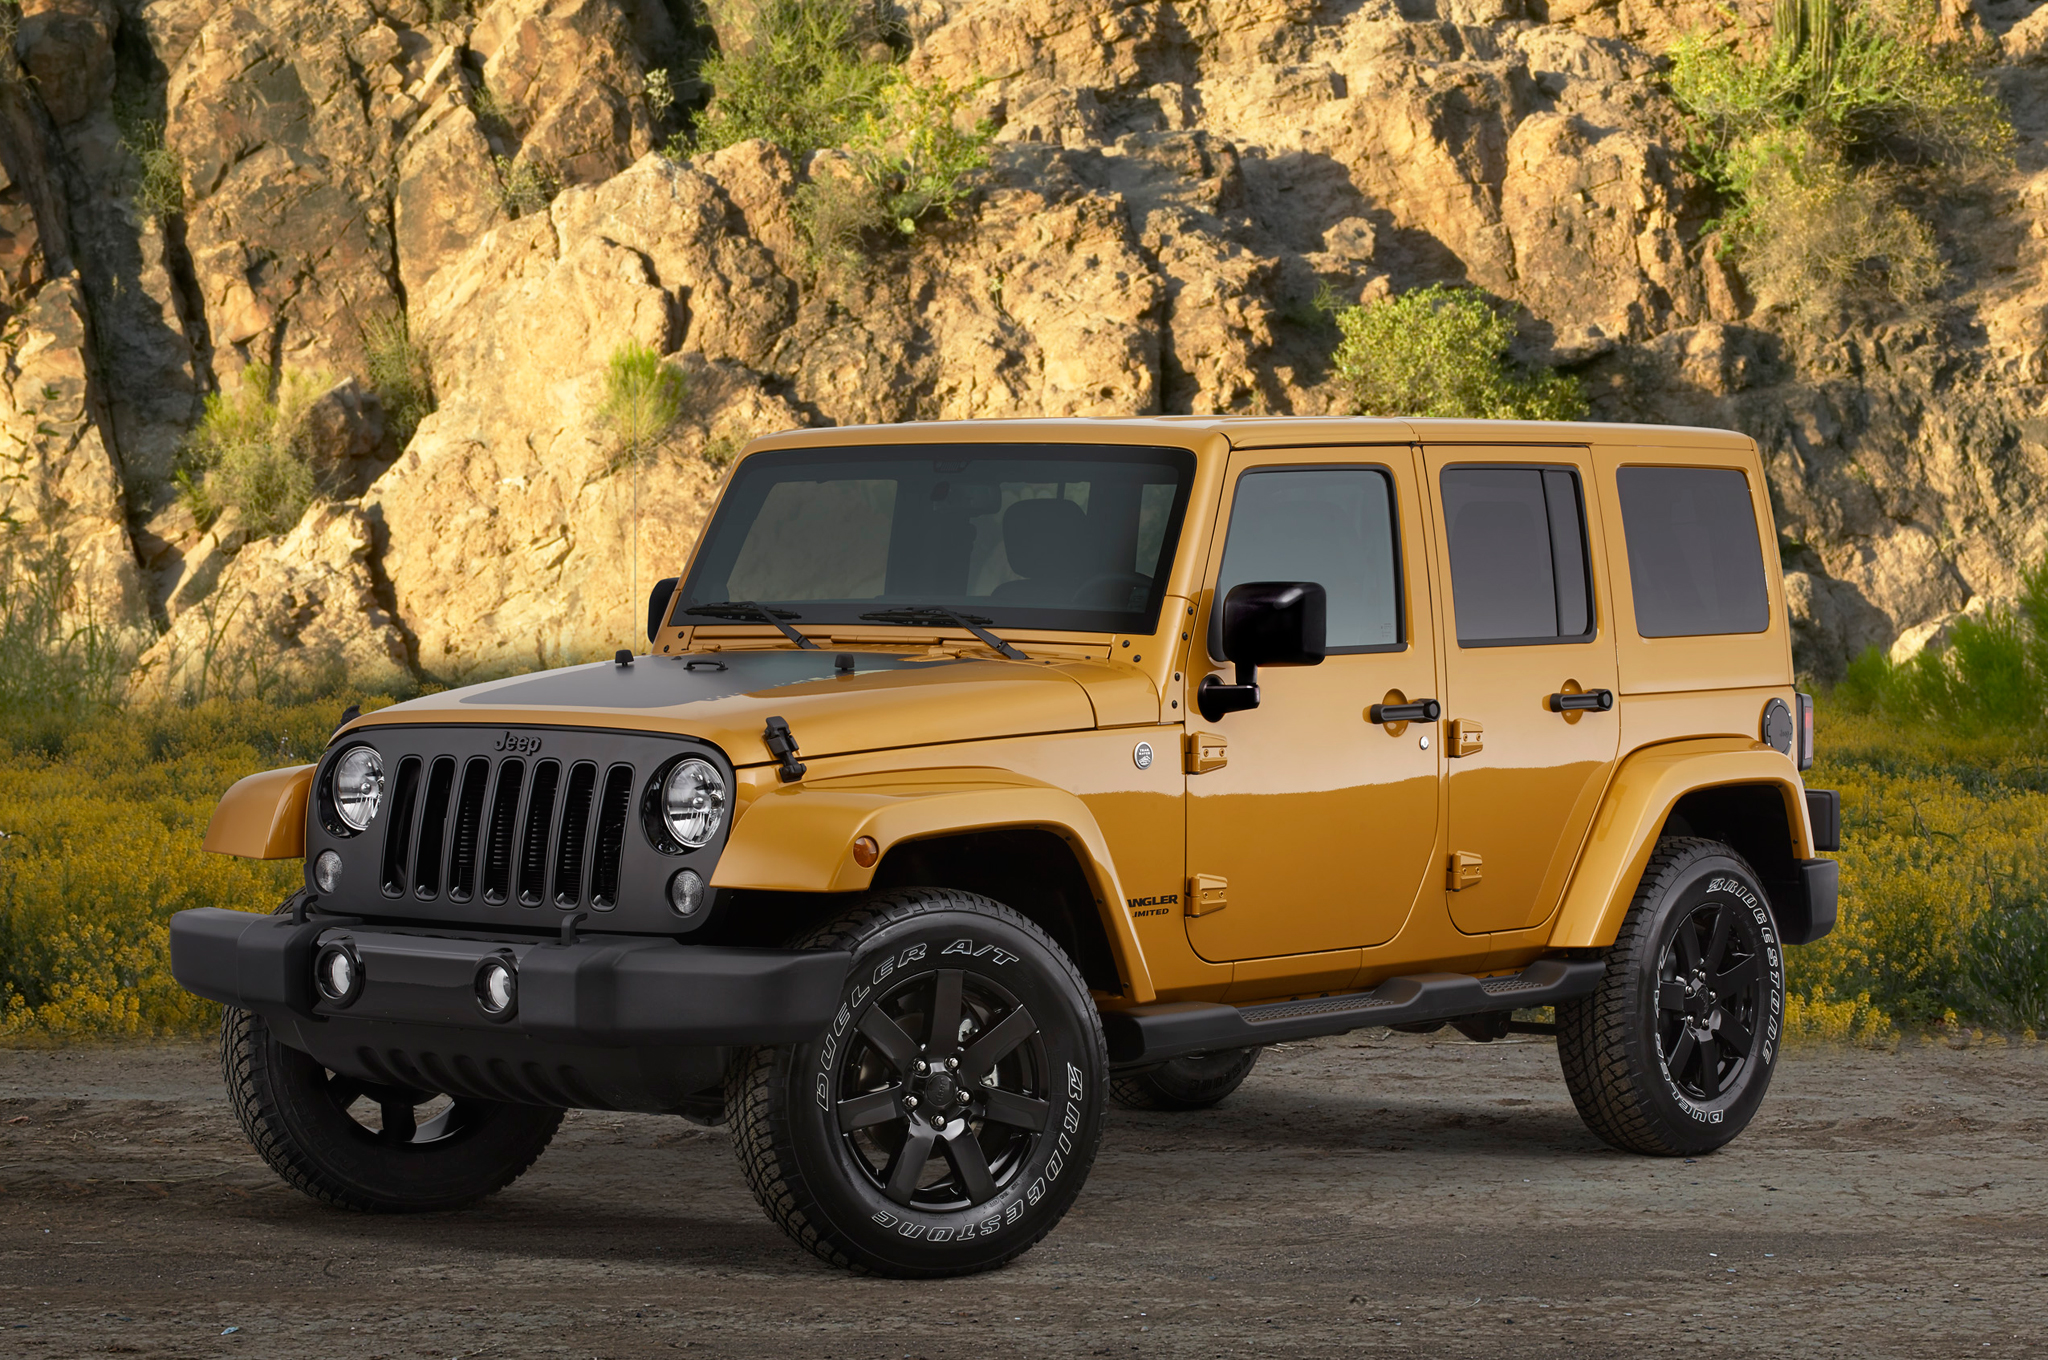 New 2014 Jeep Wrangler Unlimited Altitude Review By Steve Purdy